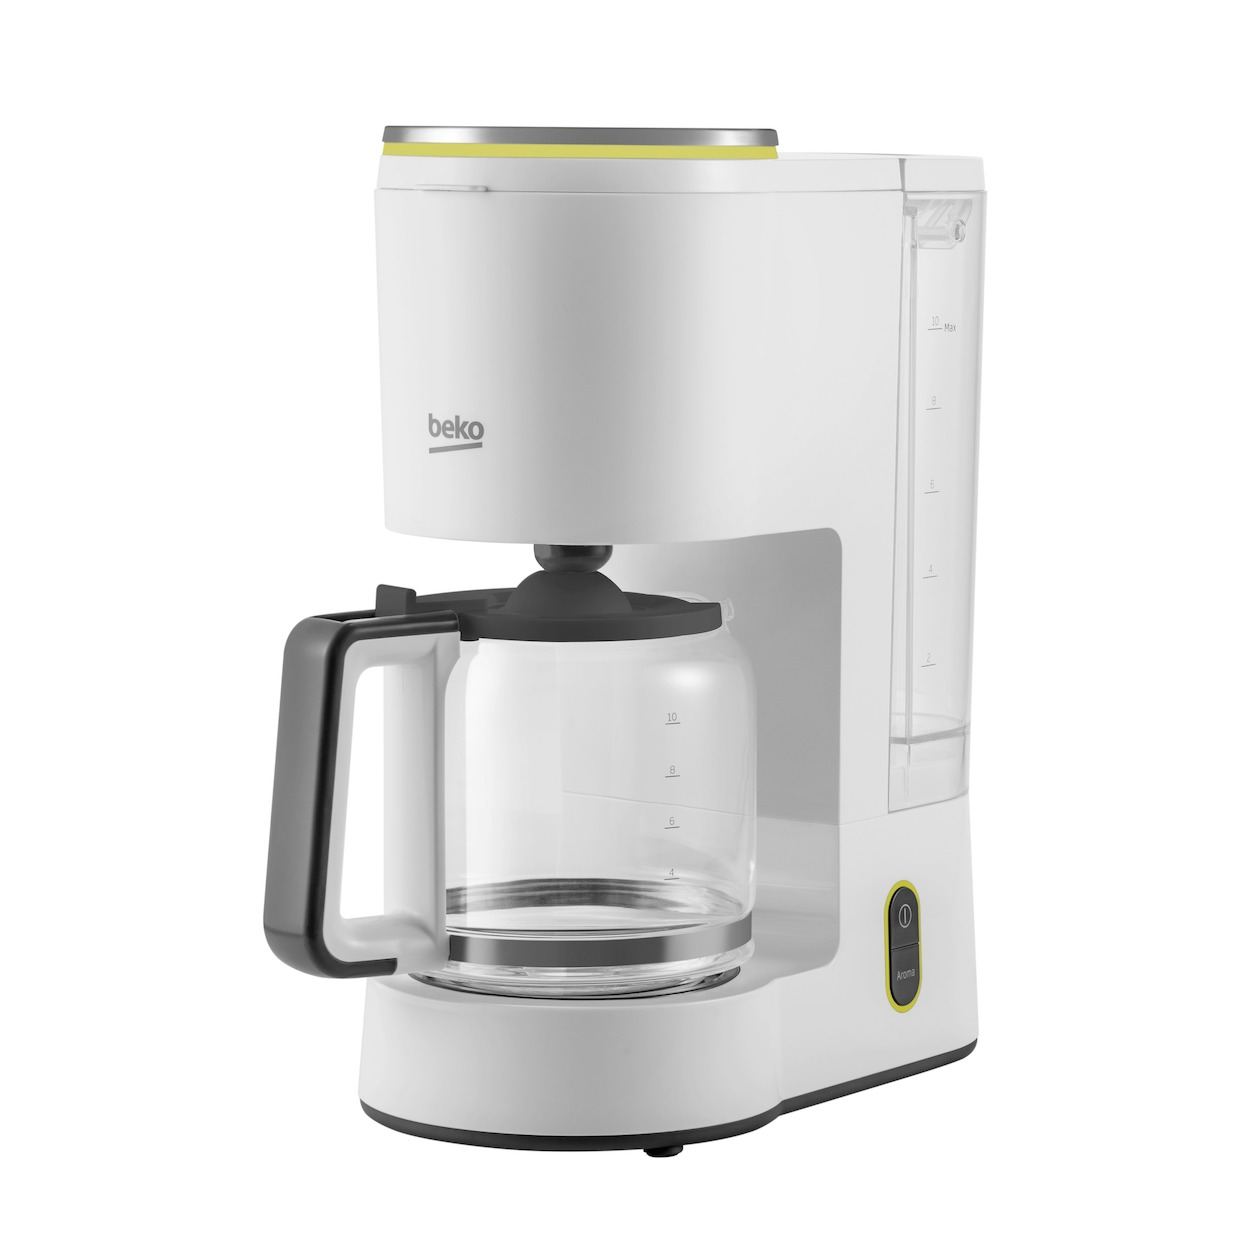 Beko koffiefilter apparaat FCM1321W wit